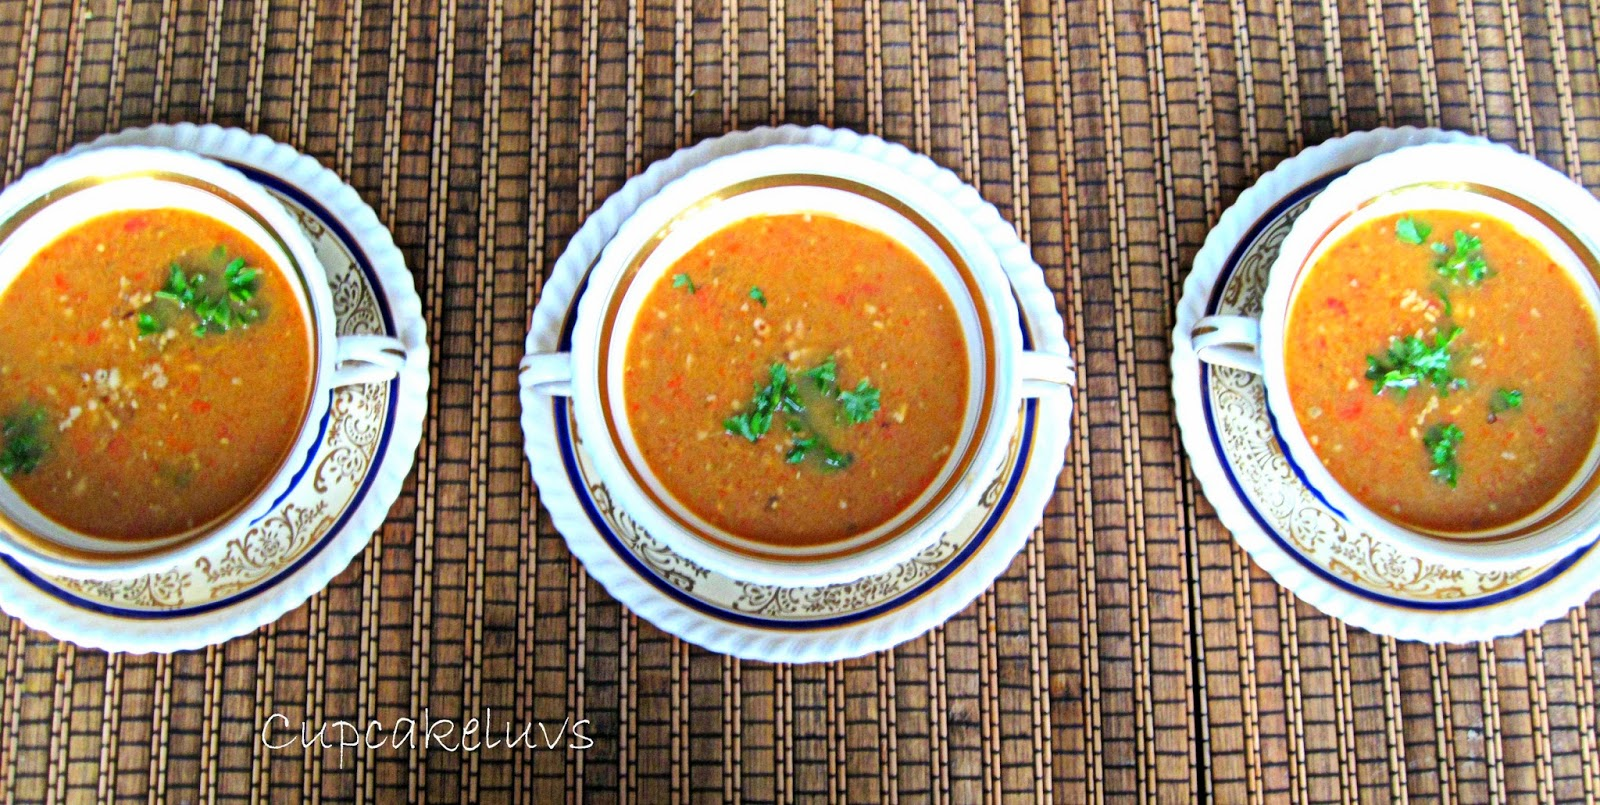 http://cupcakeluvs.blogspot.dk/2014/03/forars-suppe-spring-soup.html